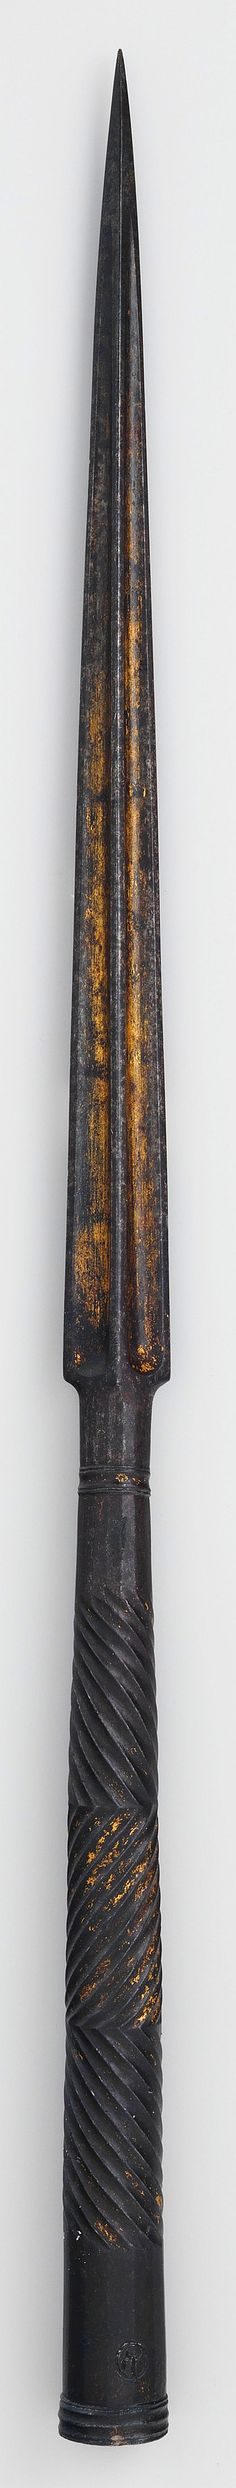 Syrian or Egyptian lance head, 16th century. The skillfully chiseled fluting patterns on the socket of this lance head are characteristic of Mamluk iron work and can be seen on Mamluk ax and mace shafts, and other lance heads. The long lance was one of the prime weapons of Mamluk cavalrymen. Met Museum.